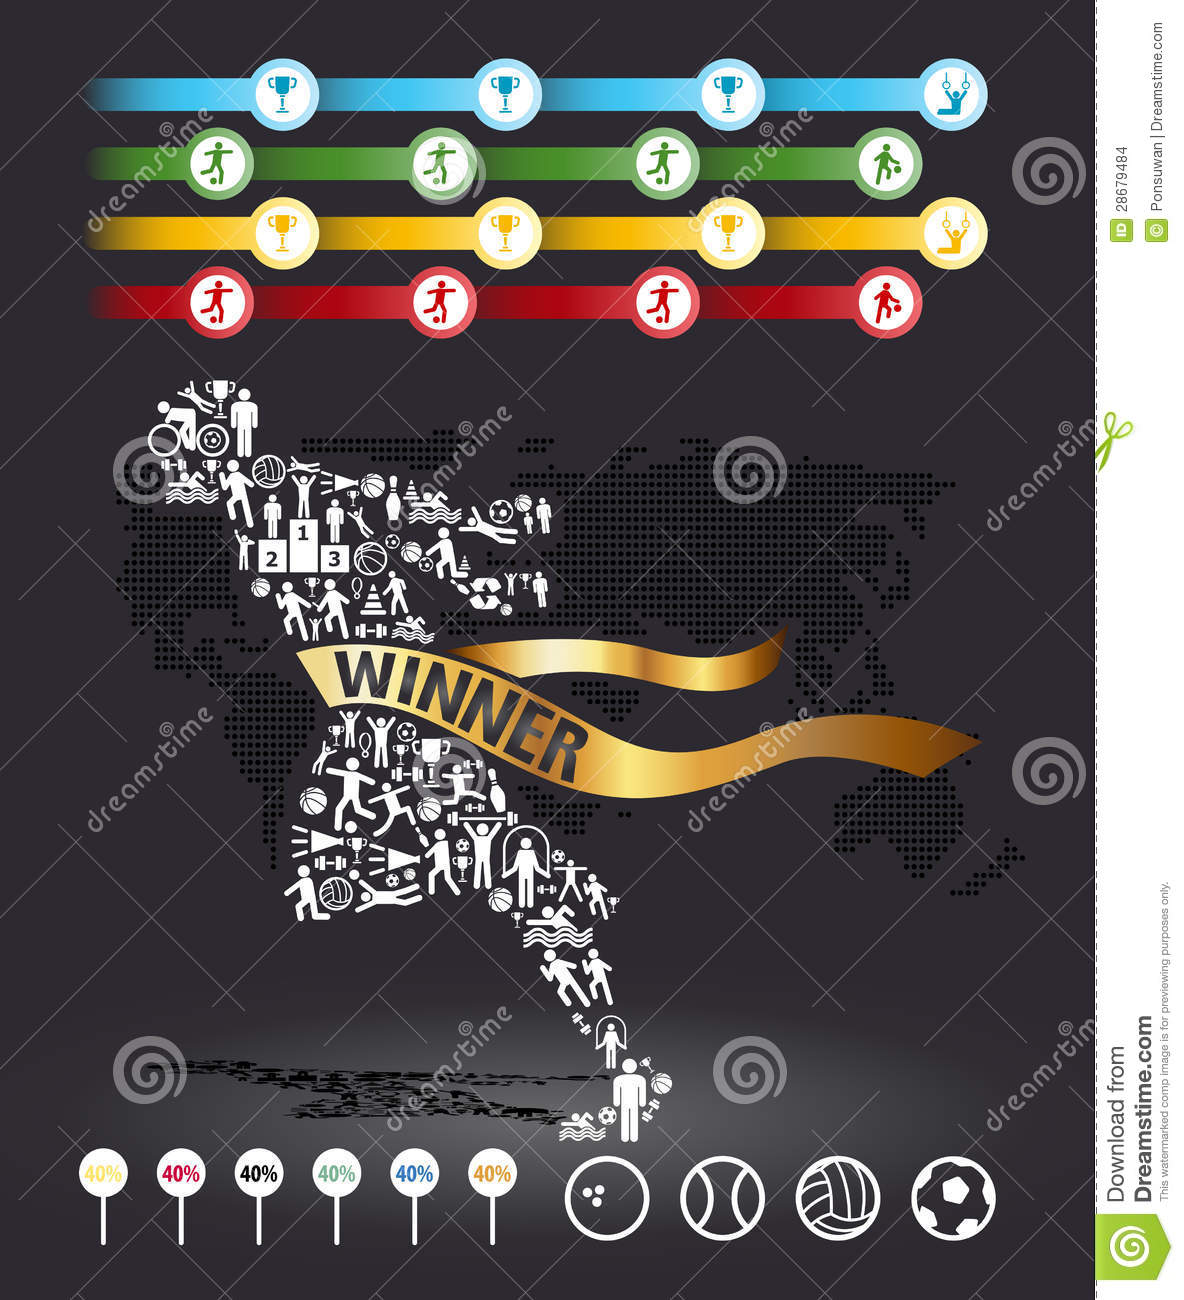 Elements are small icons sports make in active running man shape